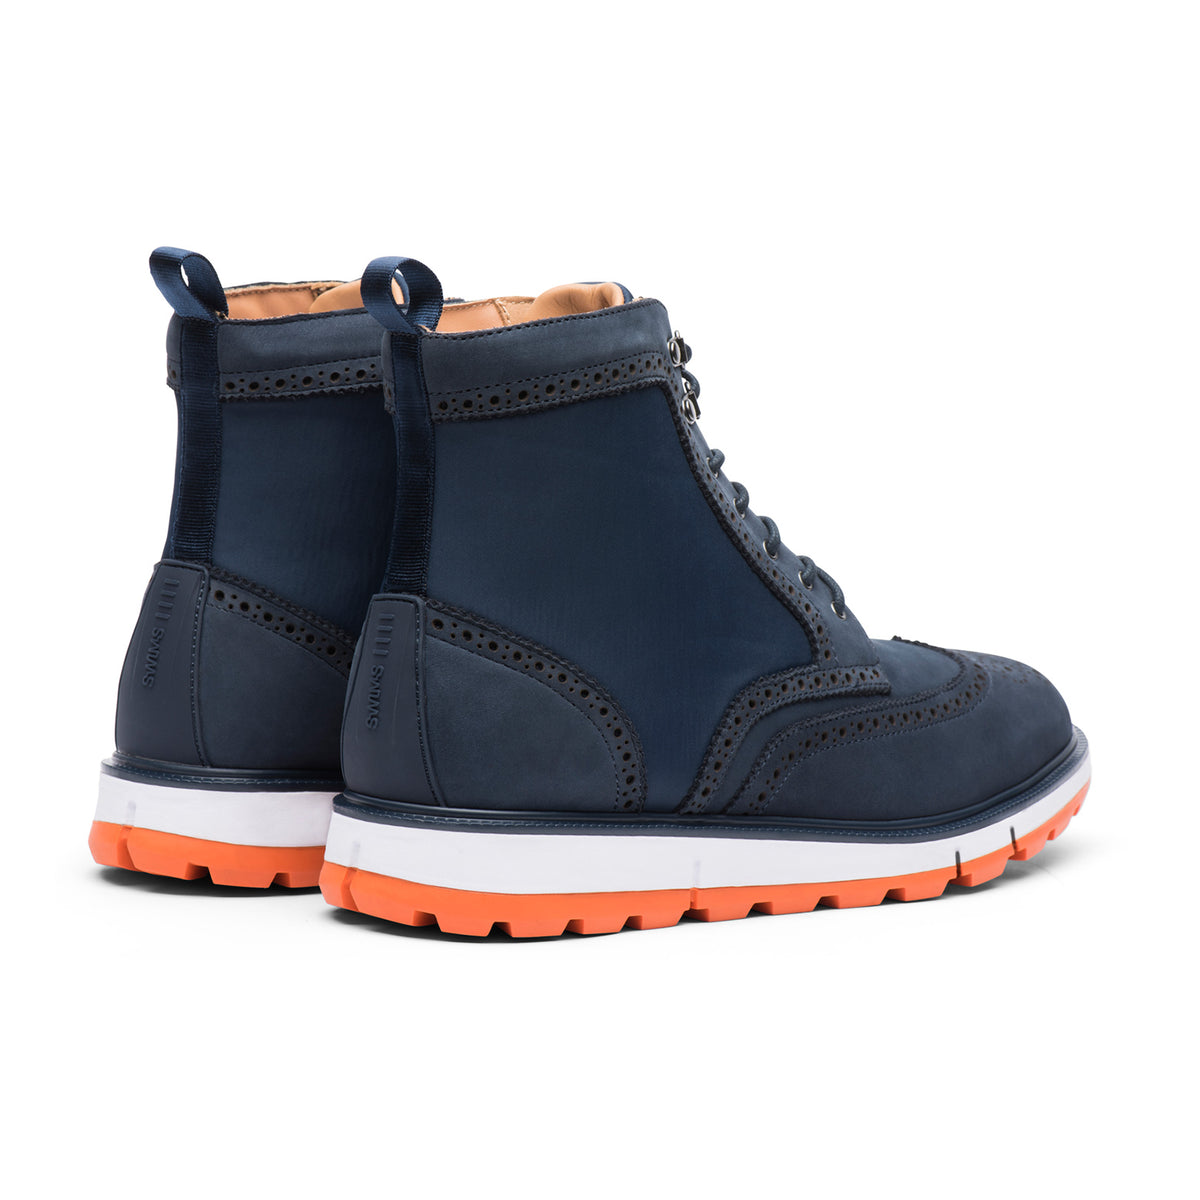 Motion Wing Tip Boot - background::white,variant::Navy/Orange